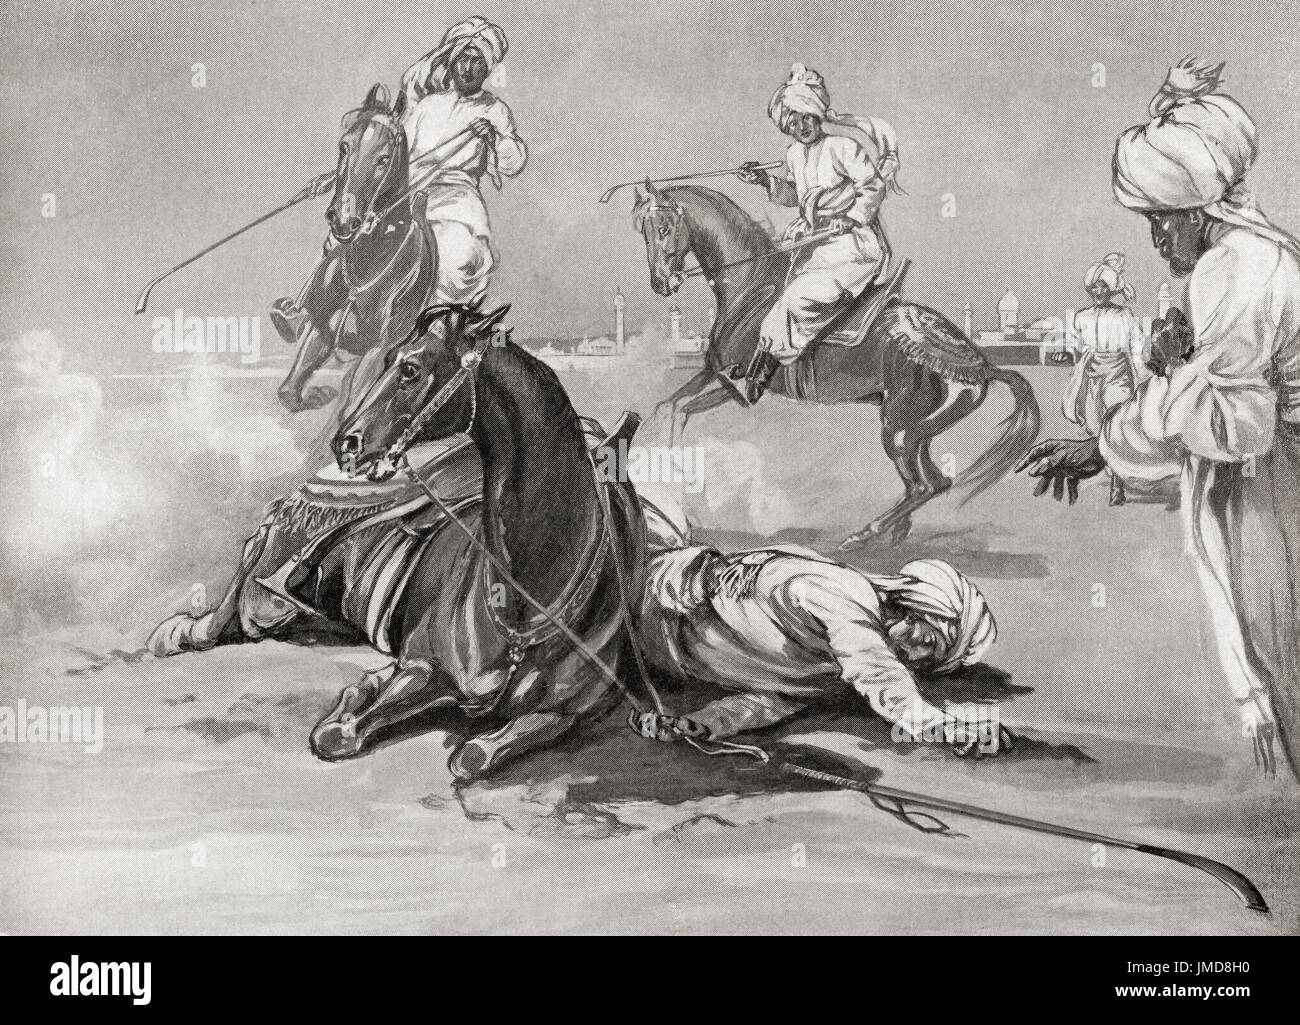 The death of Quṭb al-Dīn Aibak as a result of a fall from his horse while playing Chaugan.  Quṭb al-Dīn Aibak also spelt Quṭb ud-Dīn Aibak or Qutub ud-Din Aybak, 1150–1210.  Founder of the Mamluk dynasty of the Delhi Sultanate.  From Hutchinson's History of the Nations, published 1915. - Stock Image